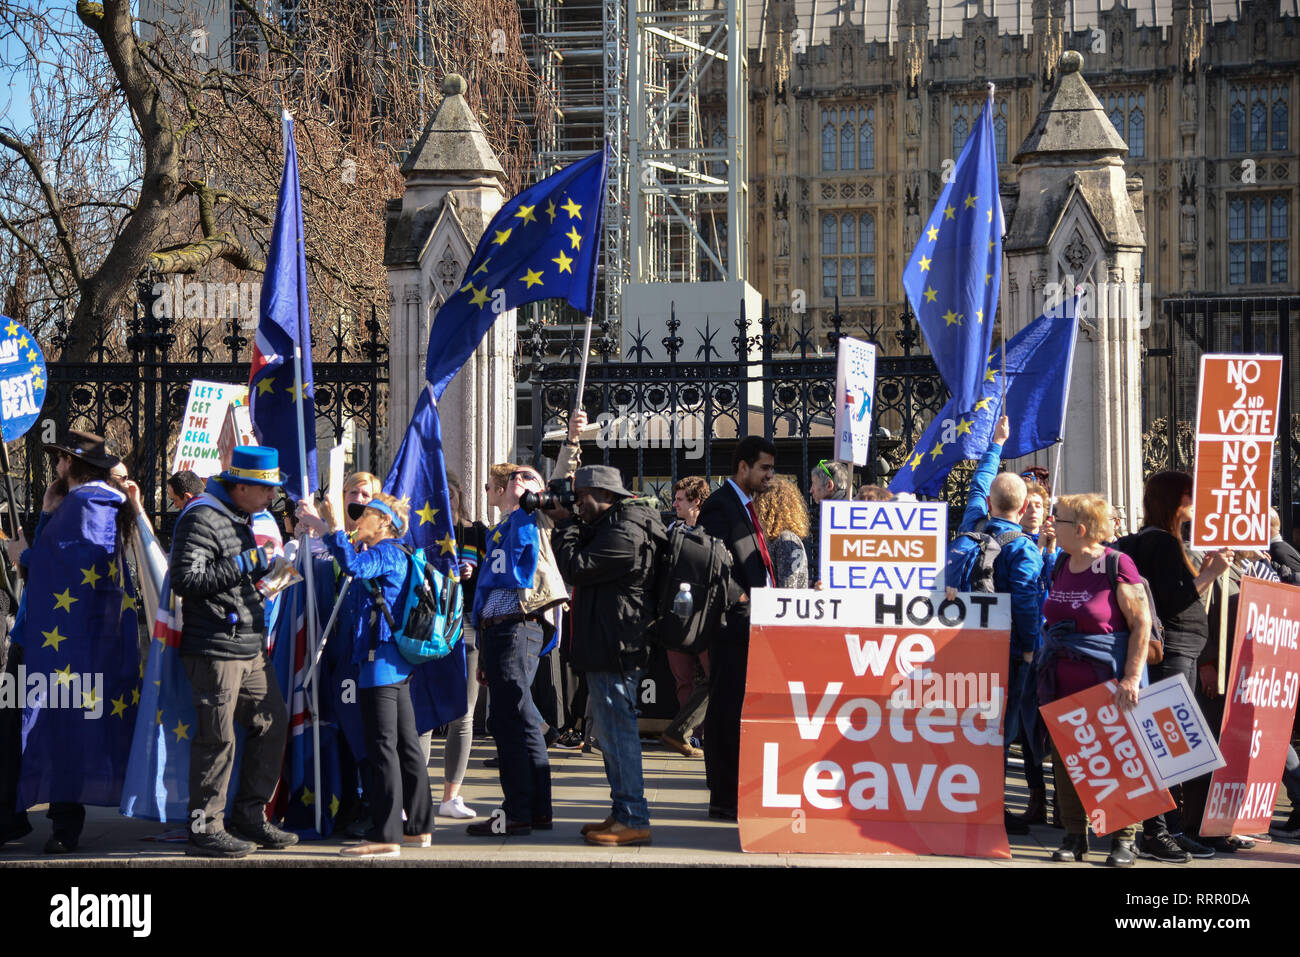 London, UK. 26th  Feb, 2019.Remain and Leave campaigners outside the Houses of Parliament.  Credit: Claire Doherty/Alamy Live News Stock Photo